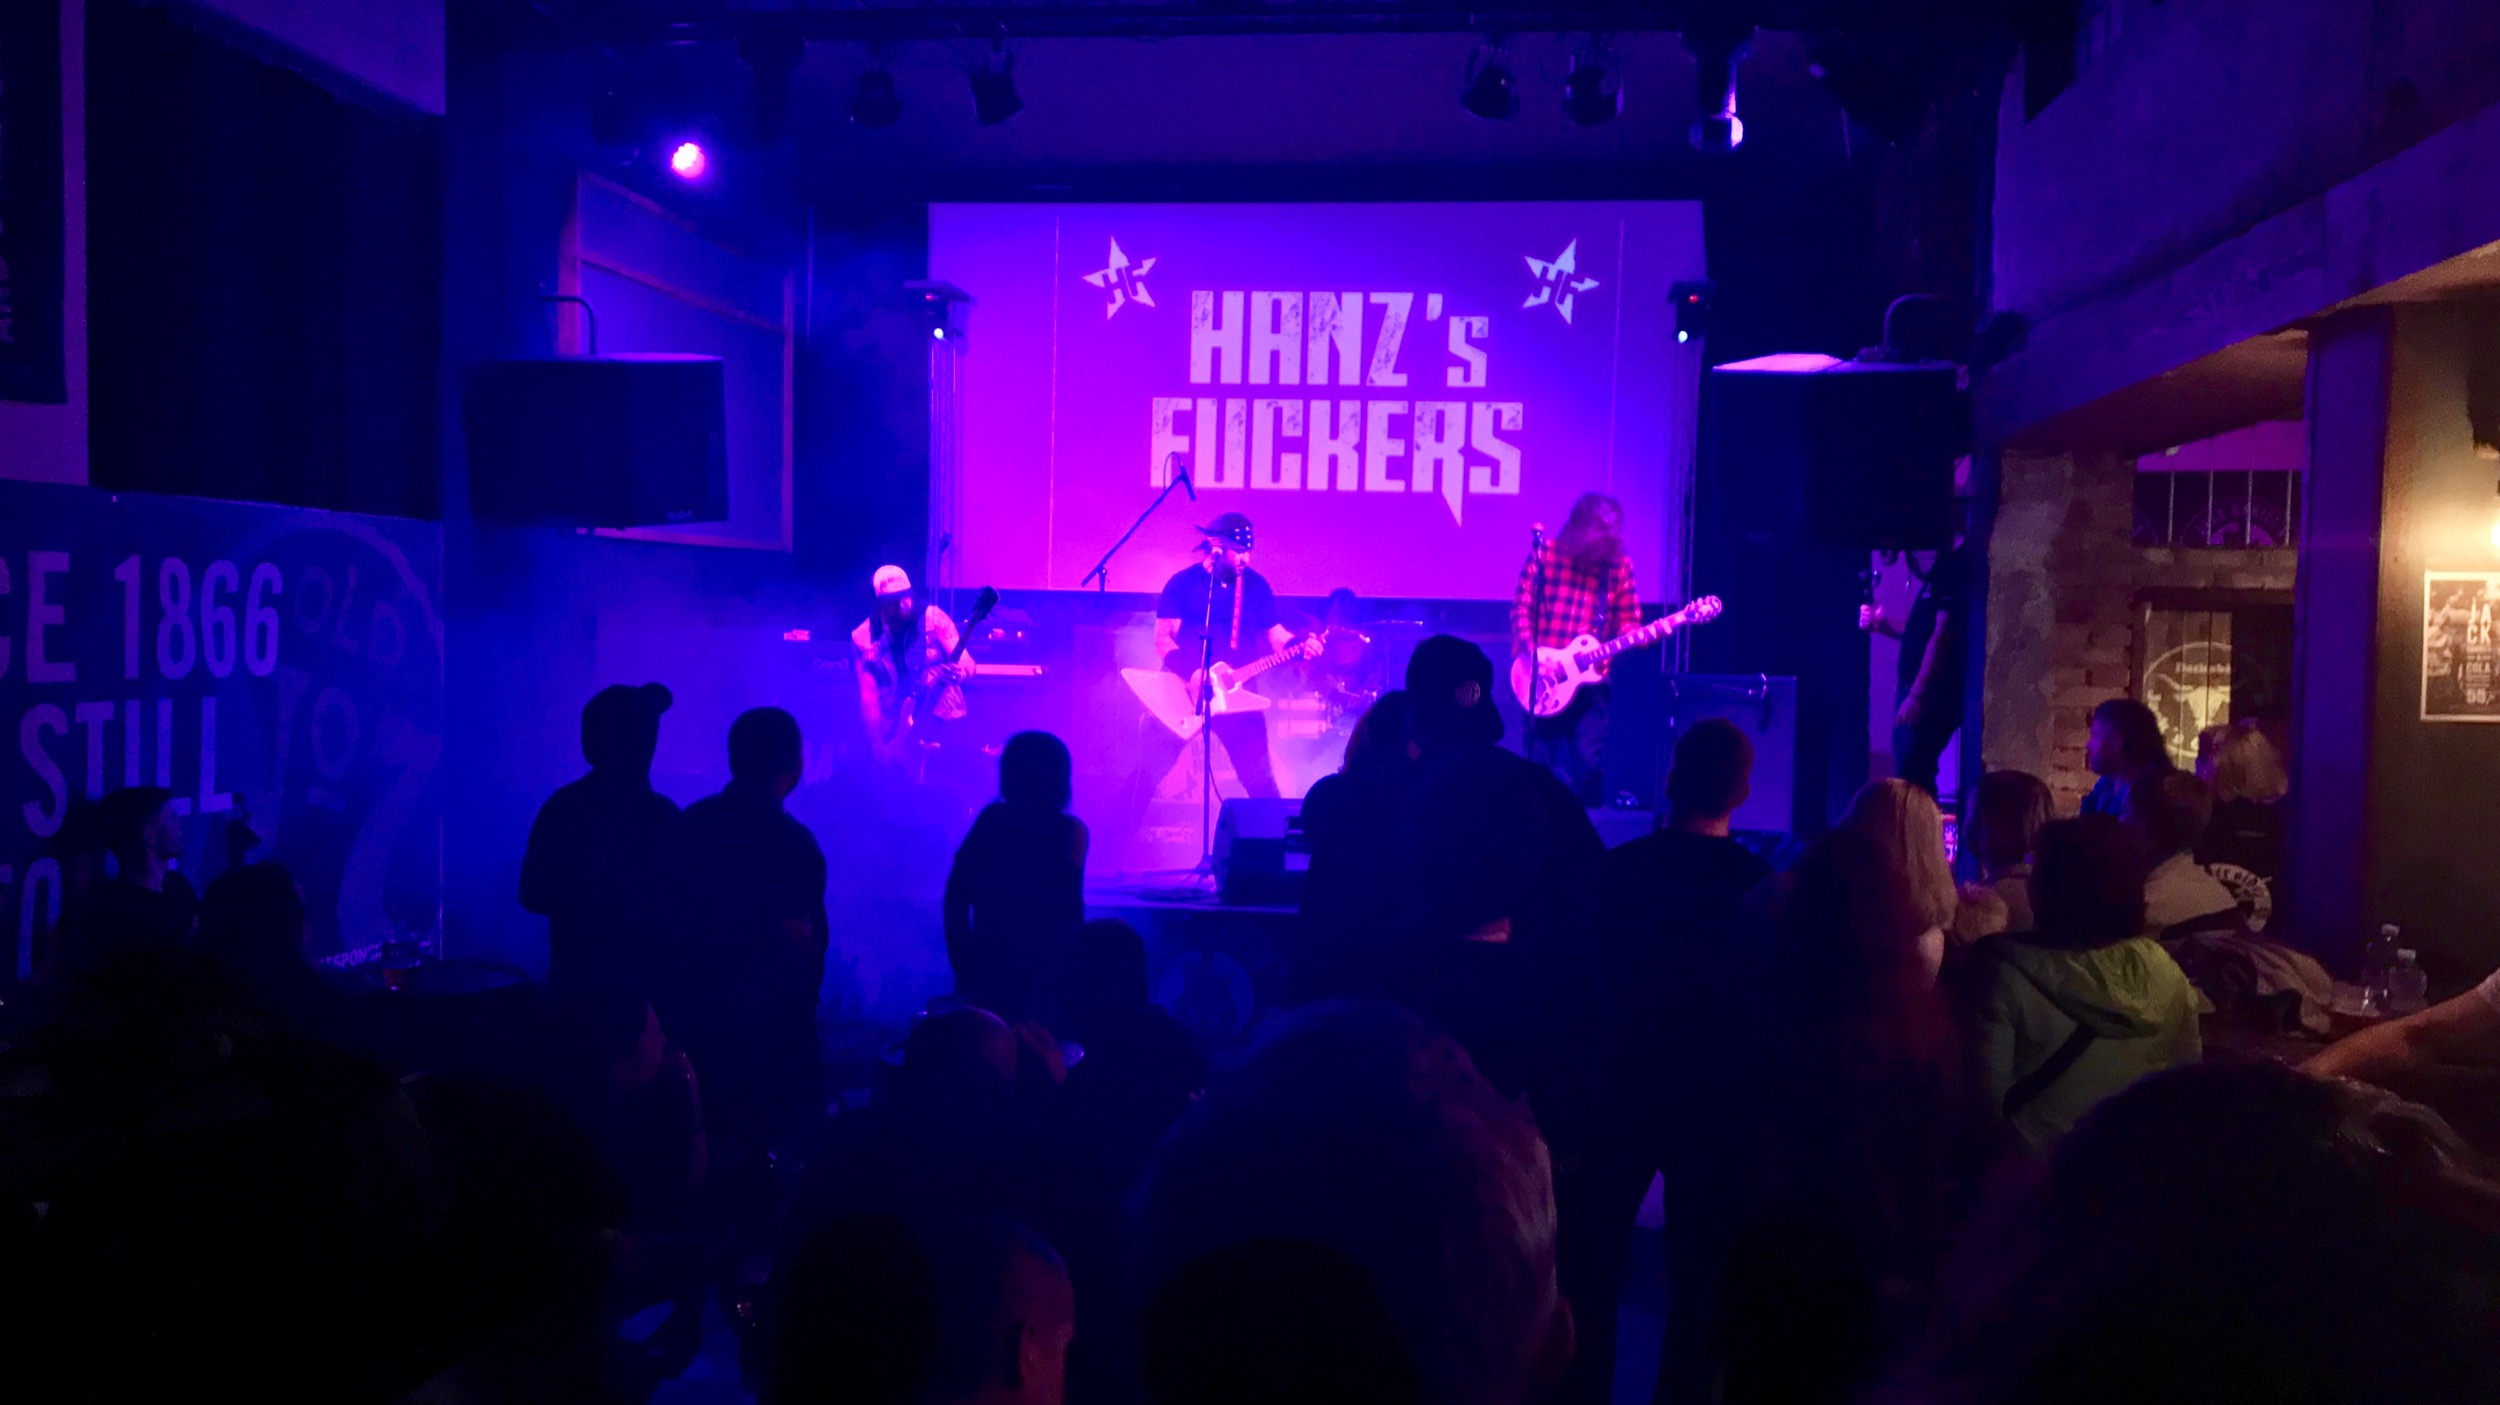 Hanz's Fuckers / G.O.C. / Route to the Other Side